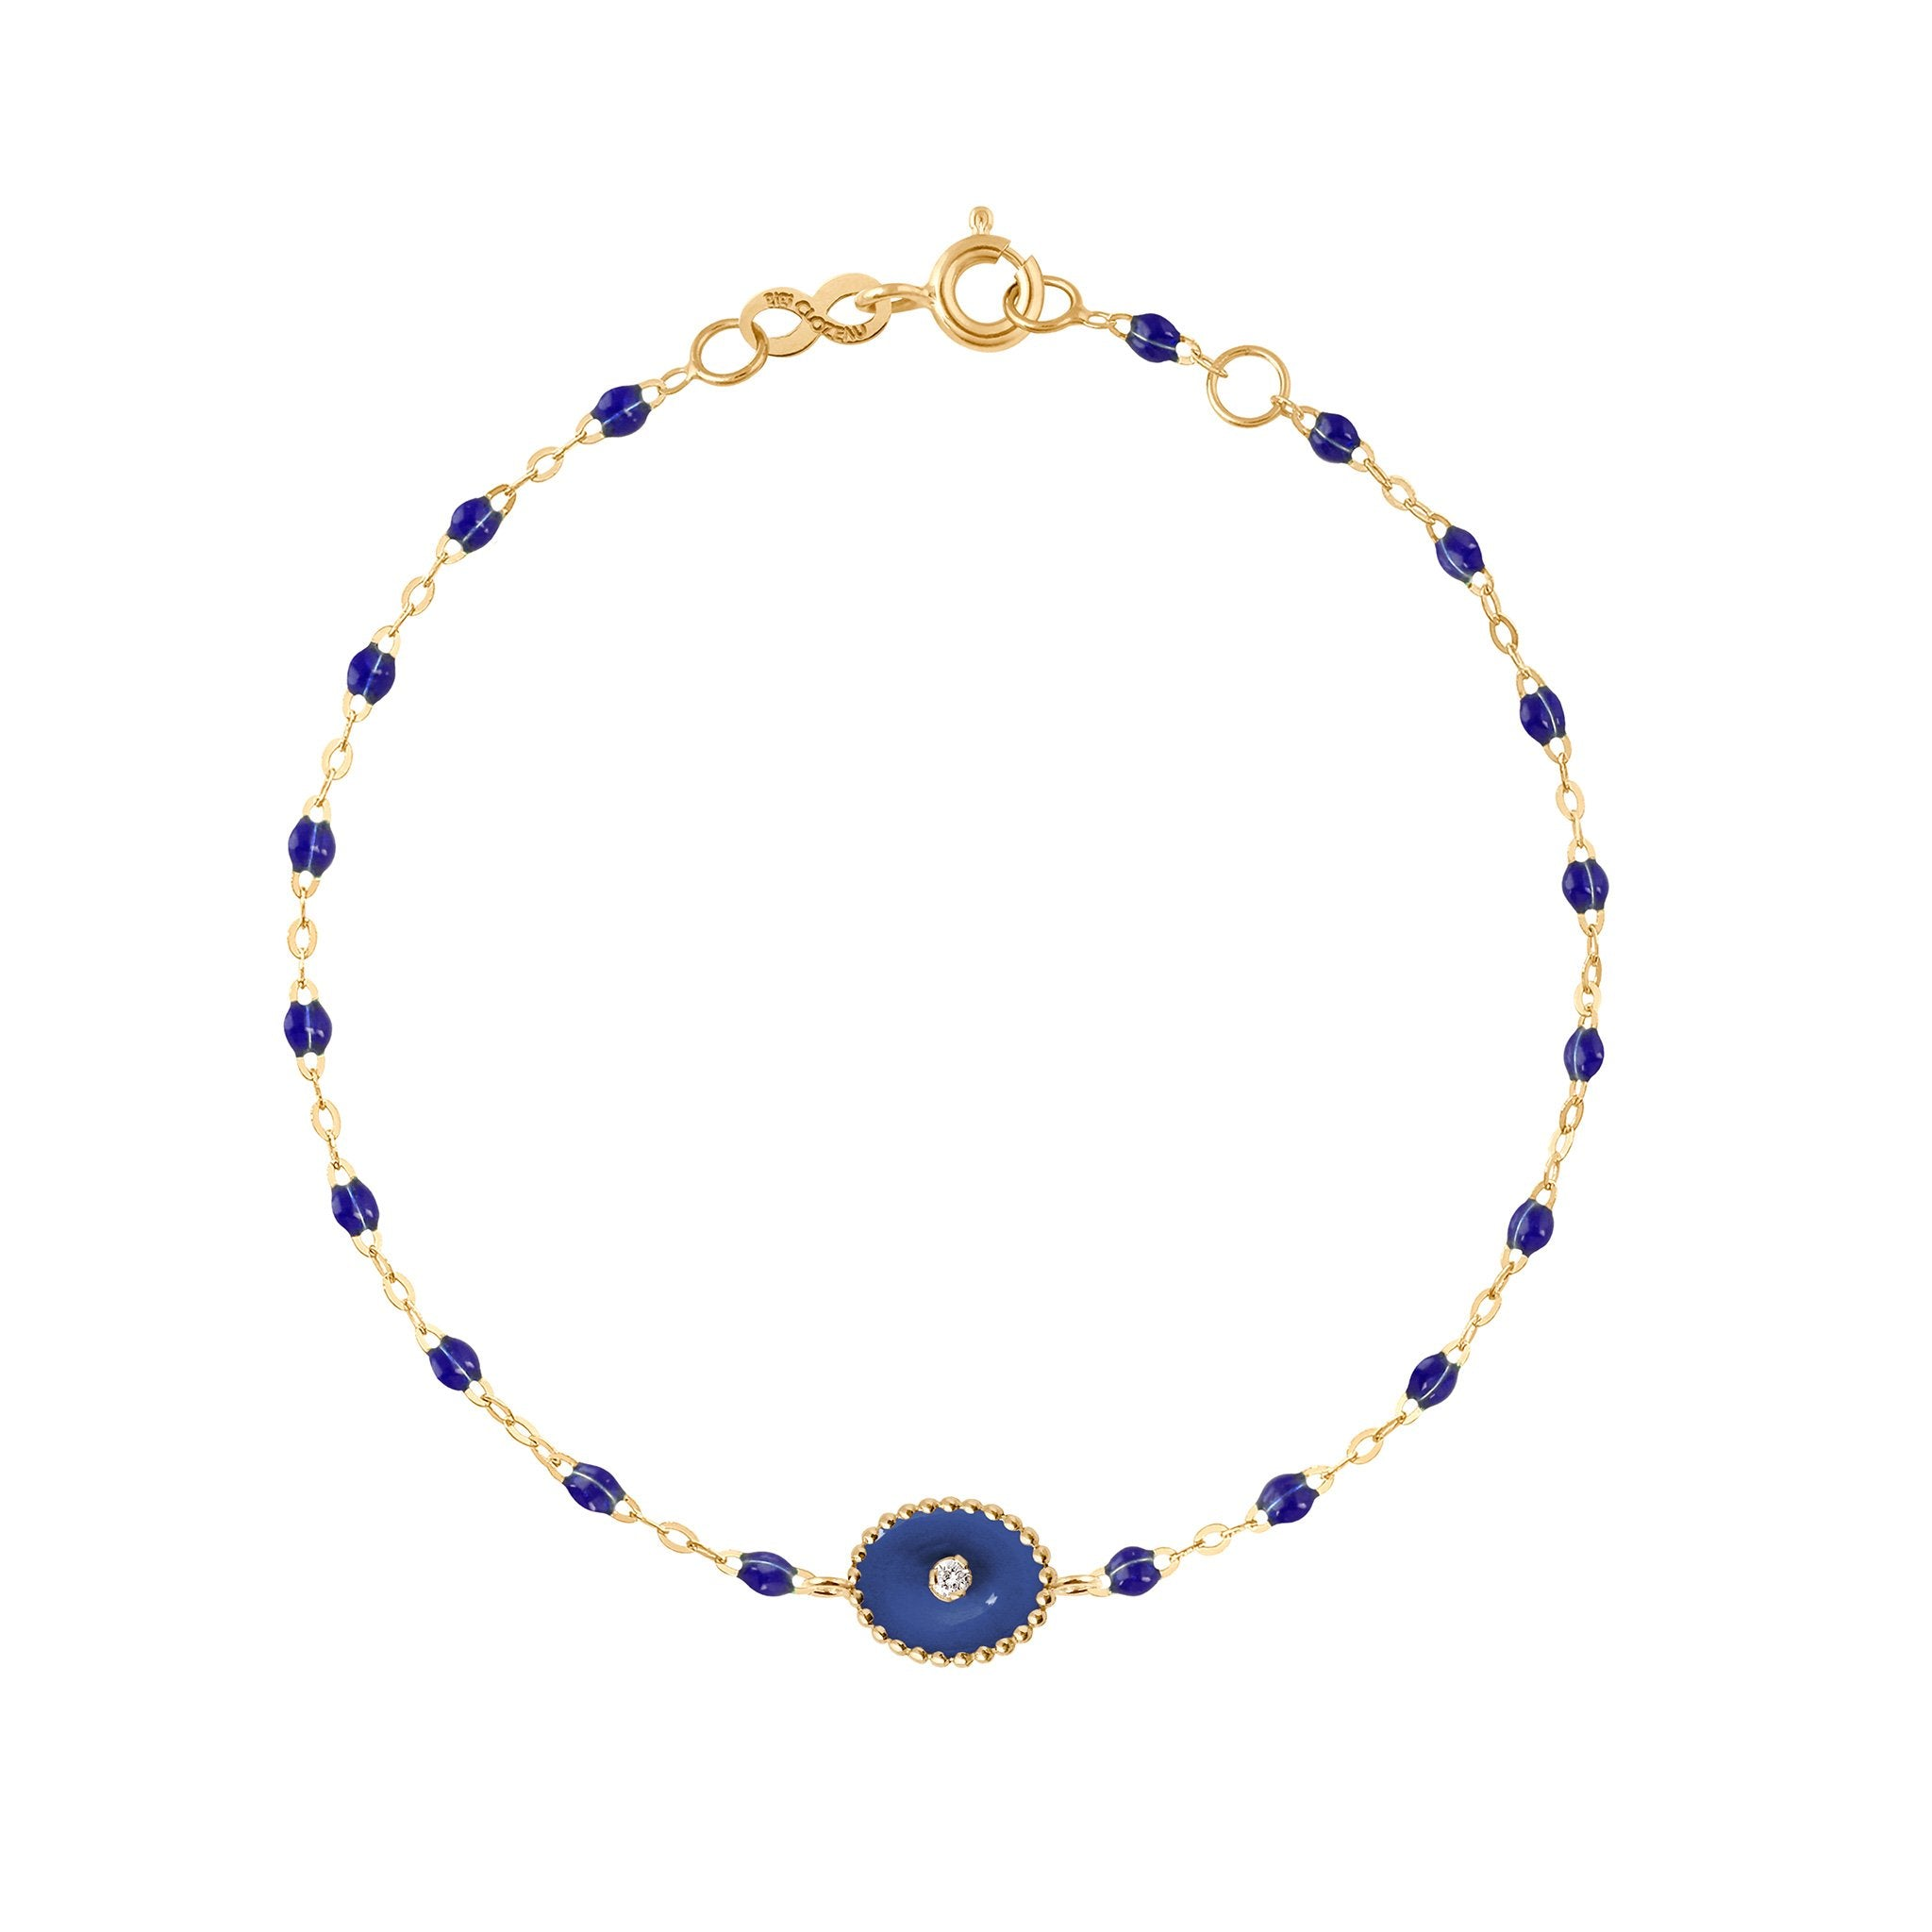 Gigi Clozeau - North Star Classic Gigi Lapis diamonds bracelet, Yellow Gold, 6.7